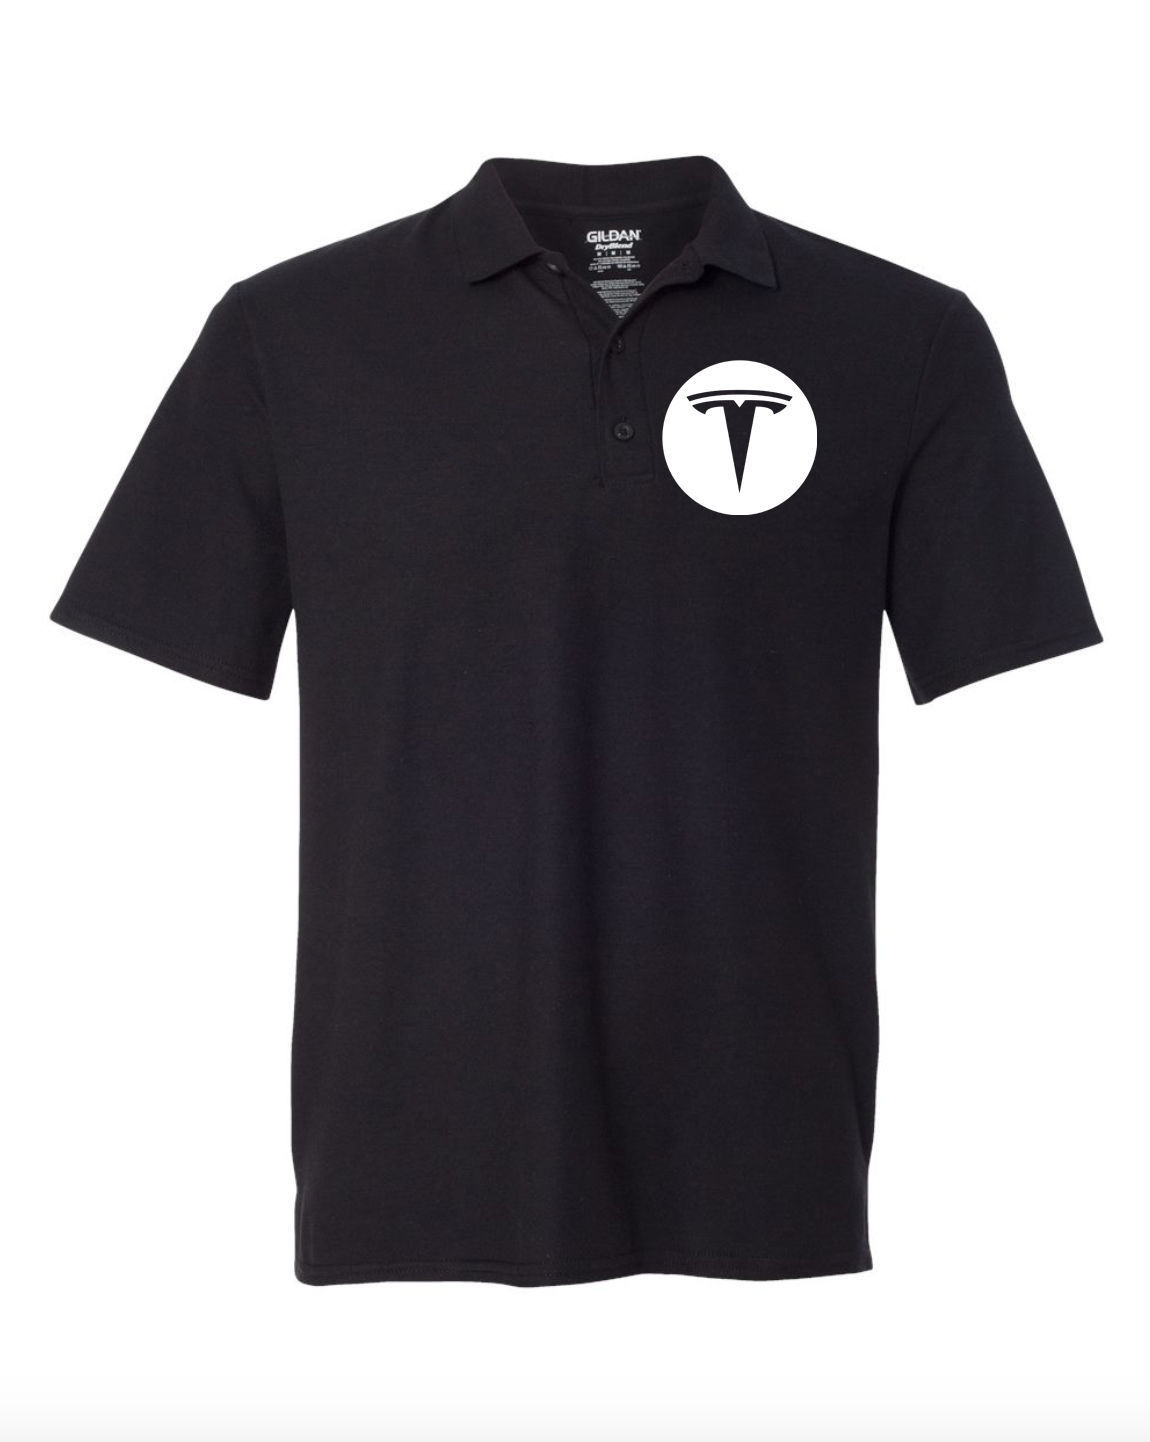 Tesla Model S Model 3 Black POLO T-Shirt